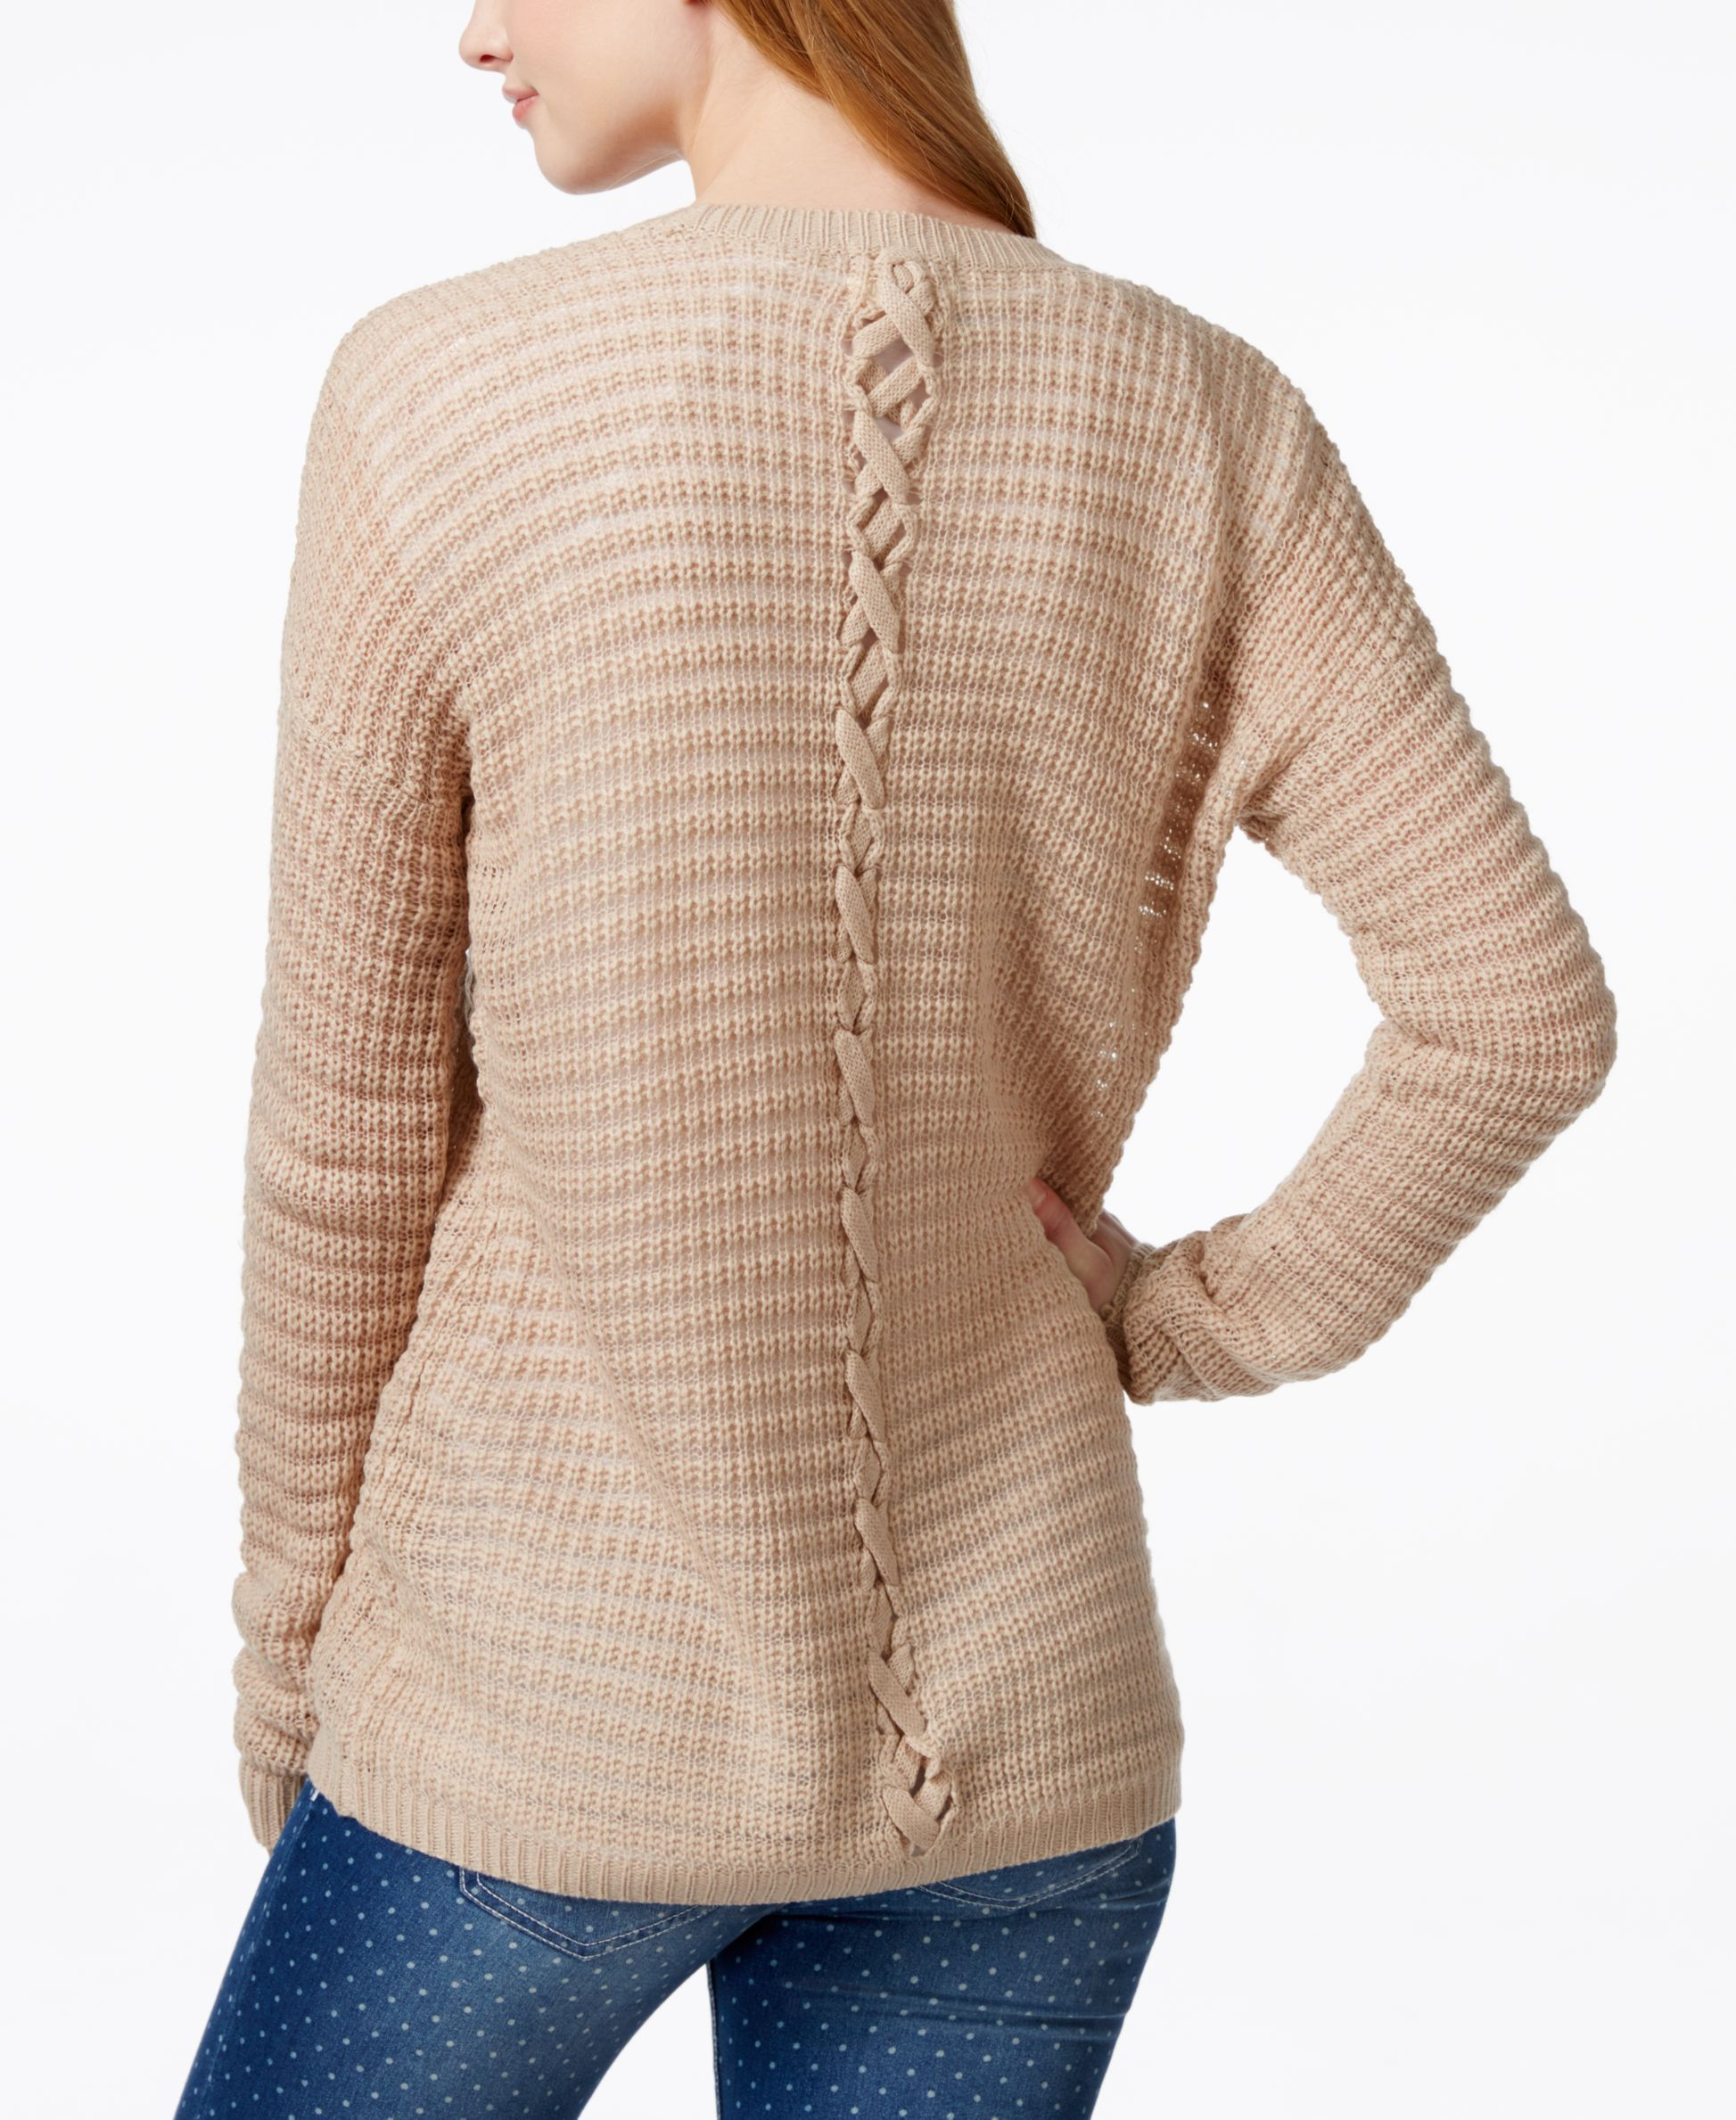 Hippie Rose Juniors' Lace-Back Cardigan Sweater | Cardigans For ...